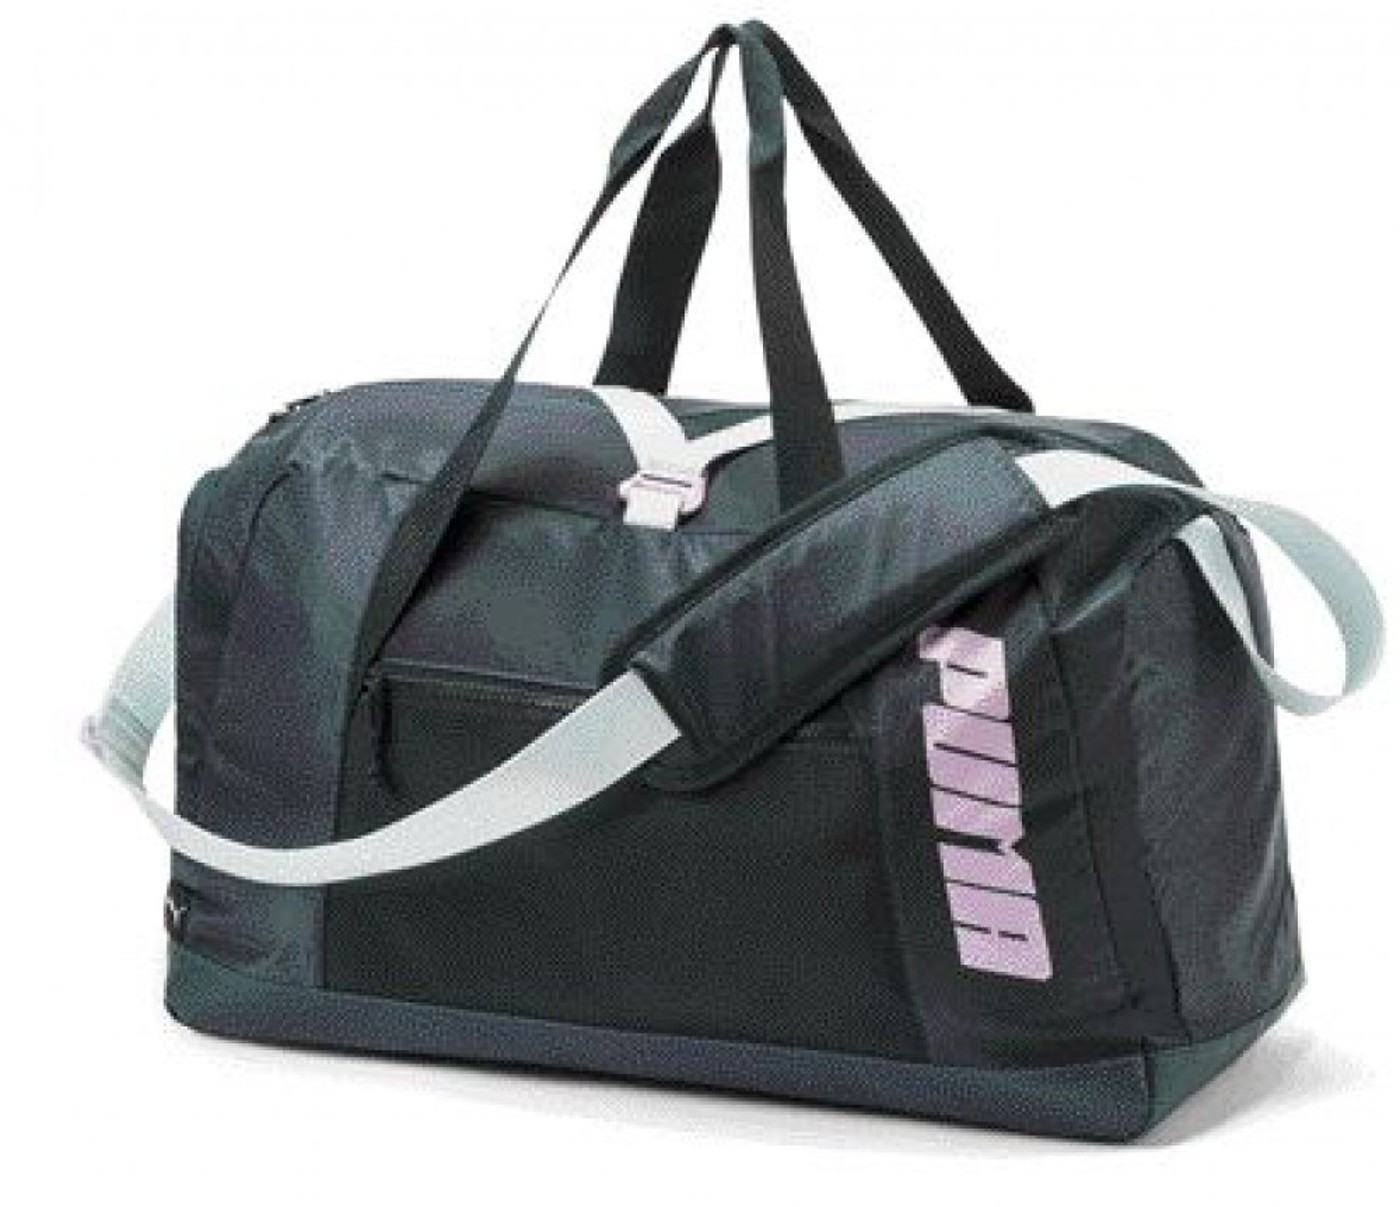 PUMA AT duffle bag